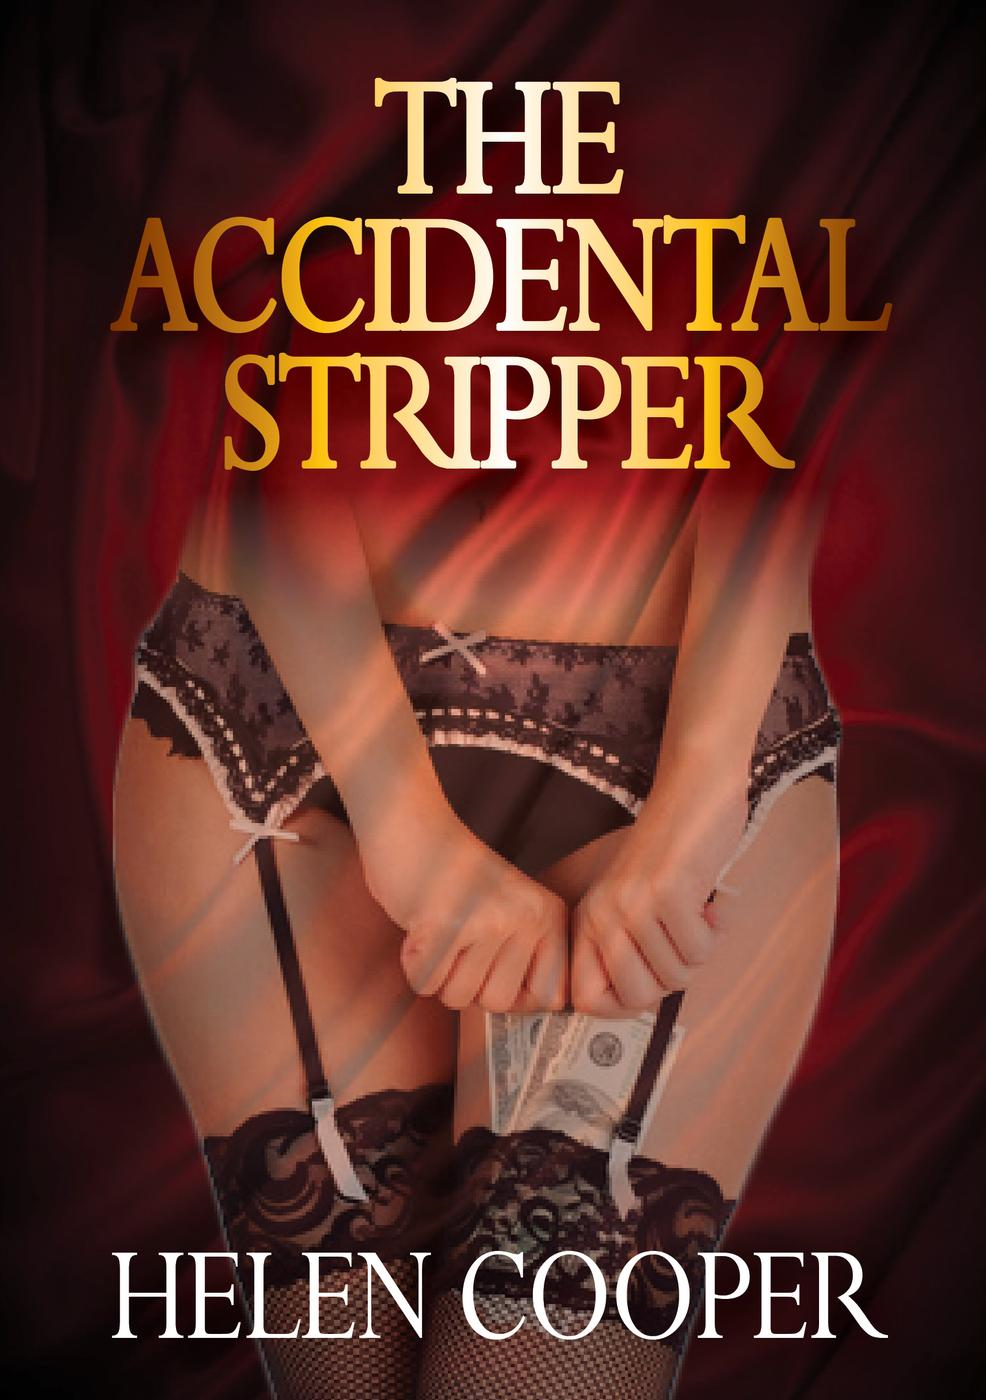 The Accidental Stripper